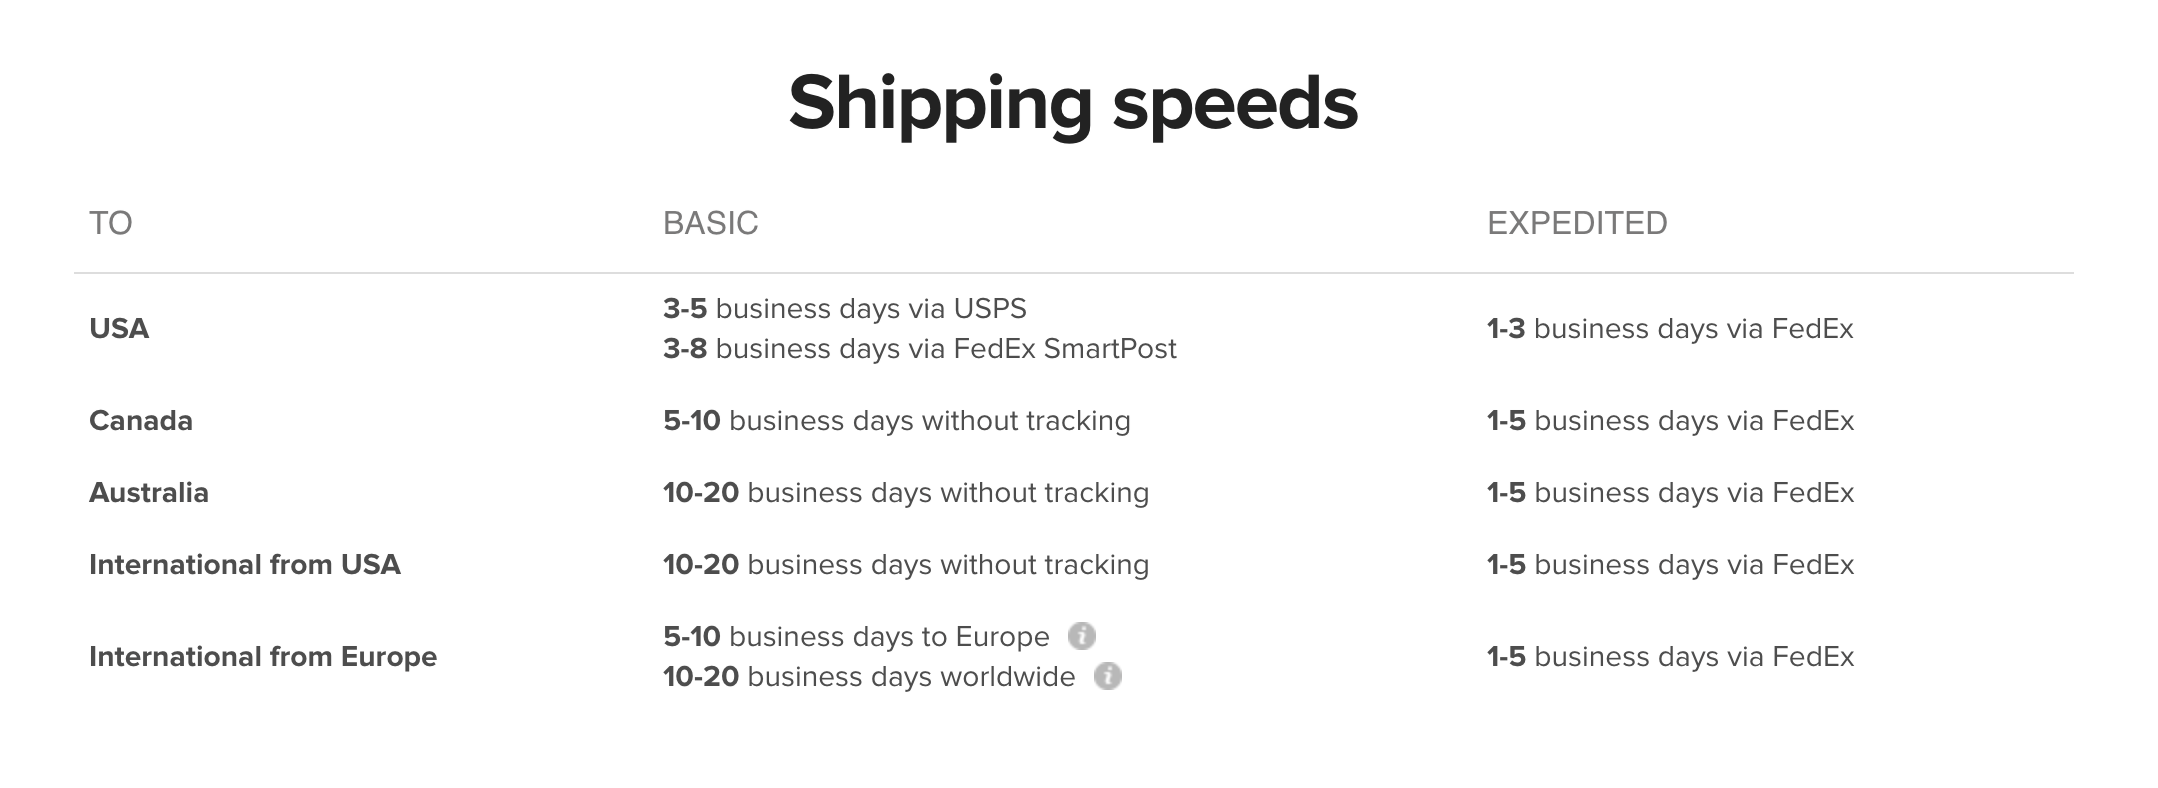 shipping speeds chart for writers gifts